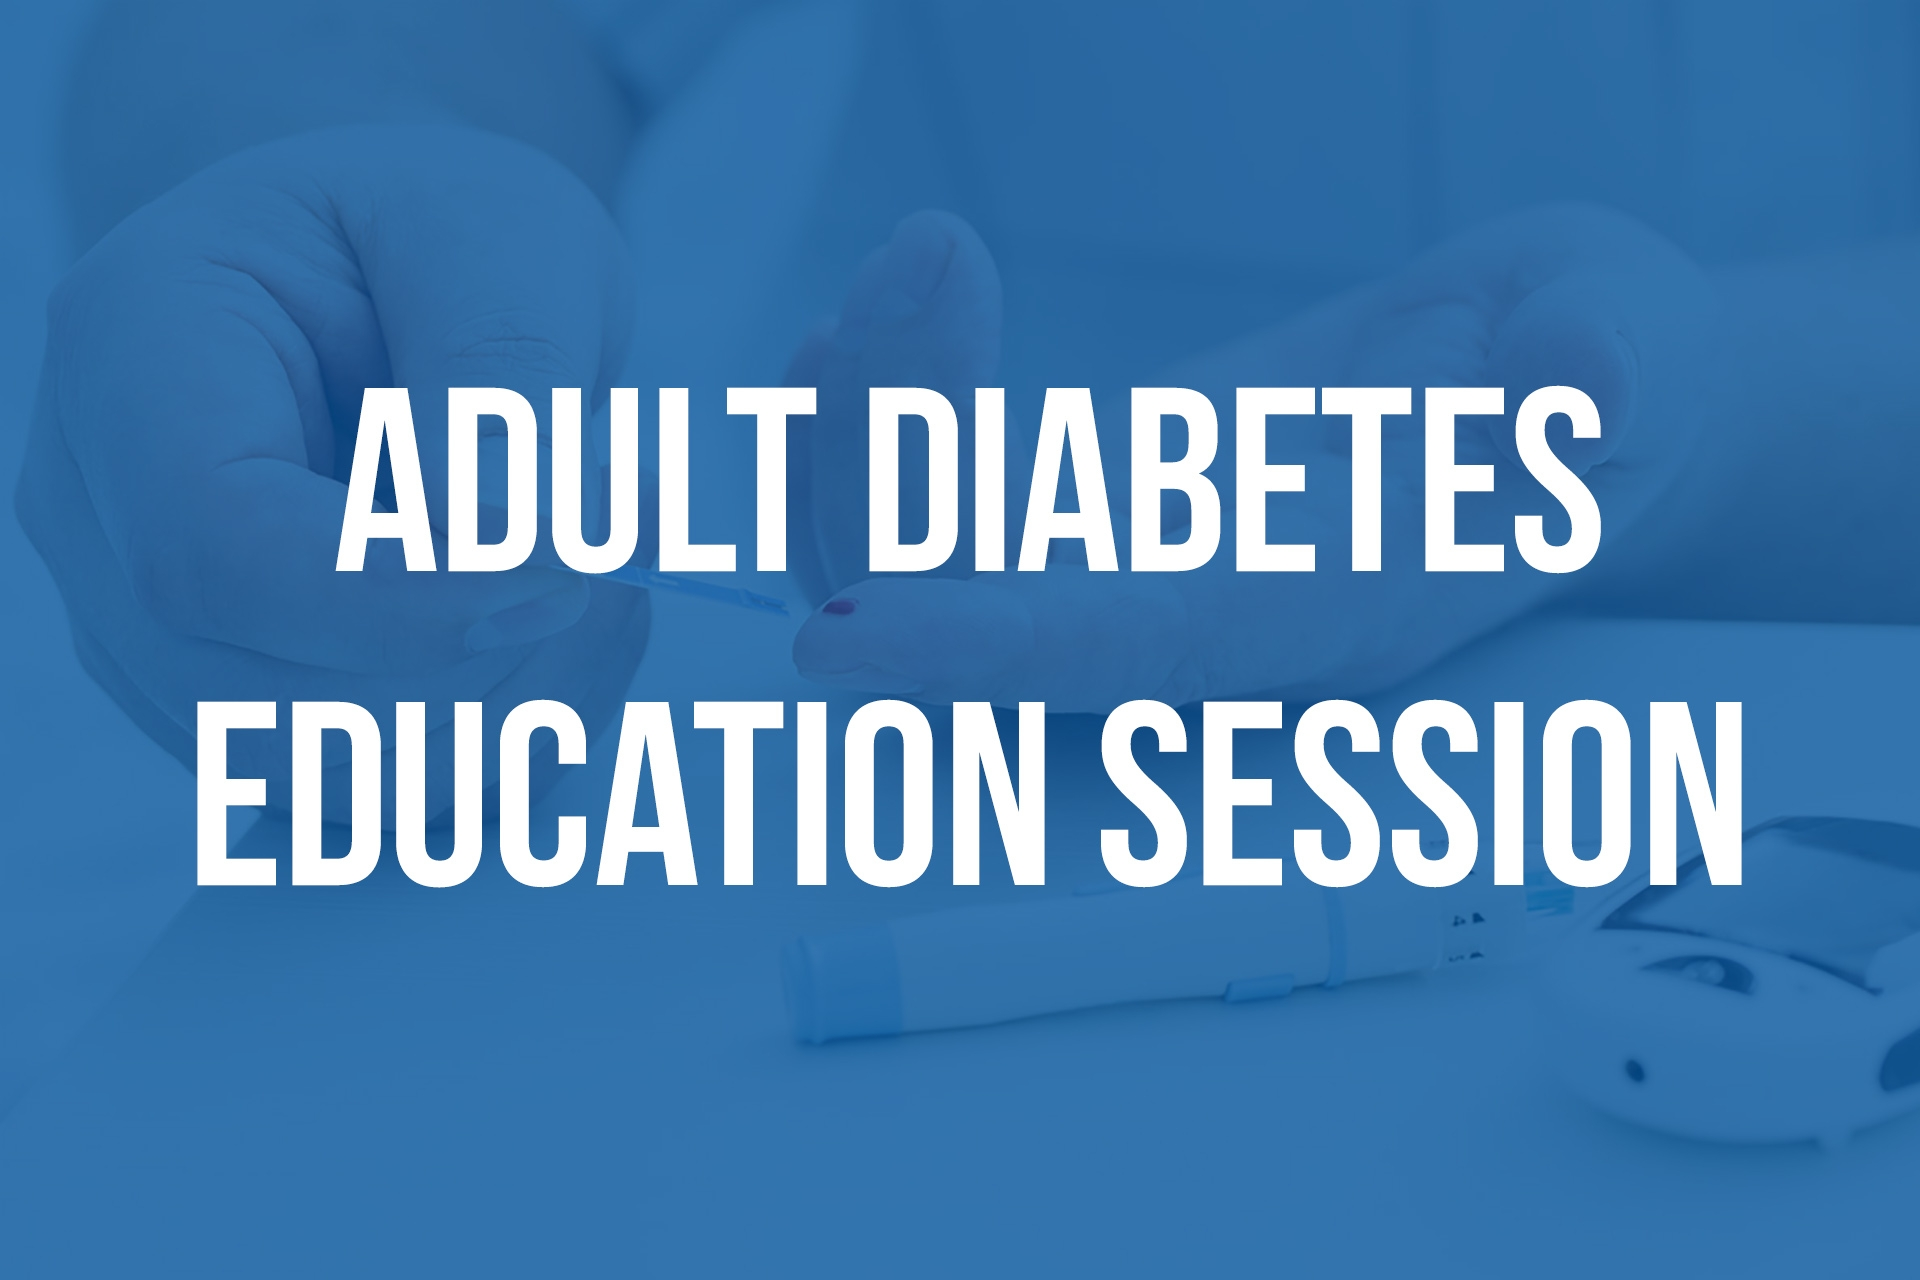 Adult diabetes education session